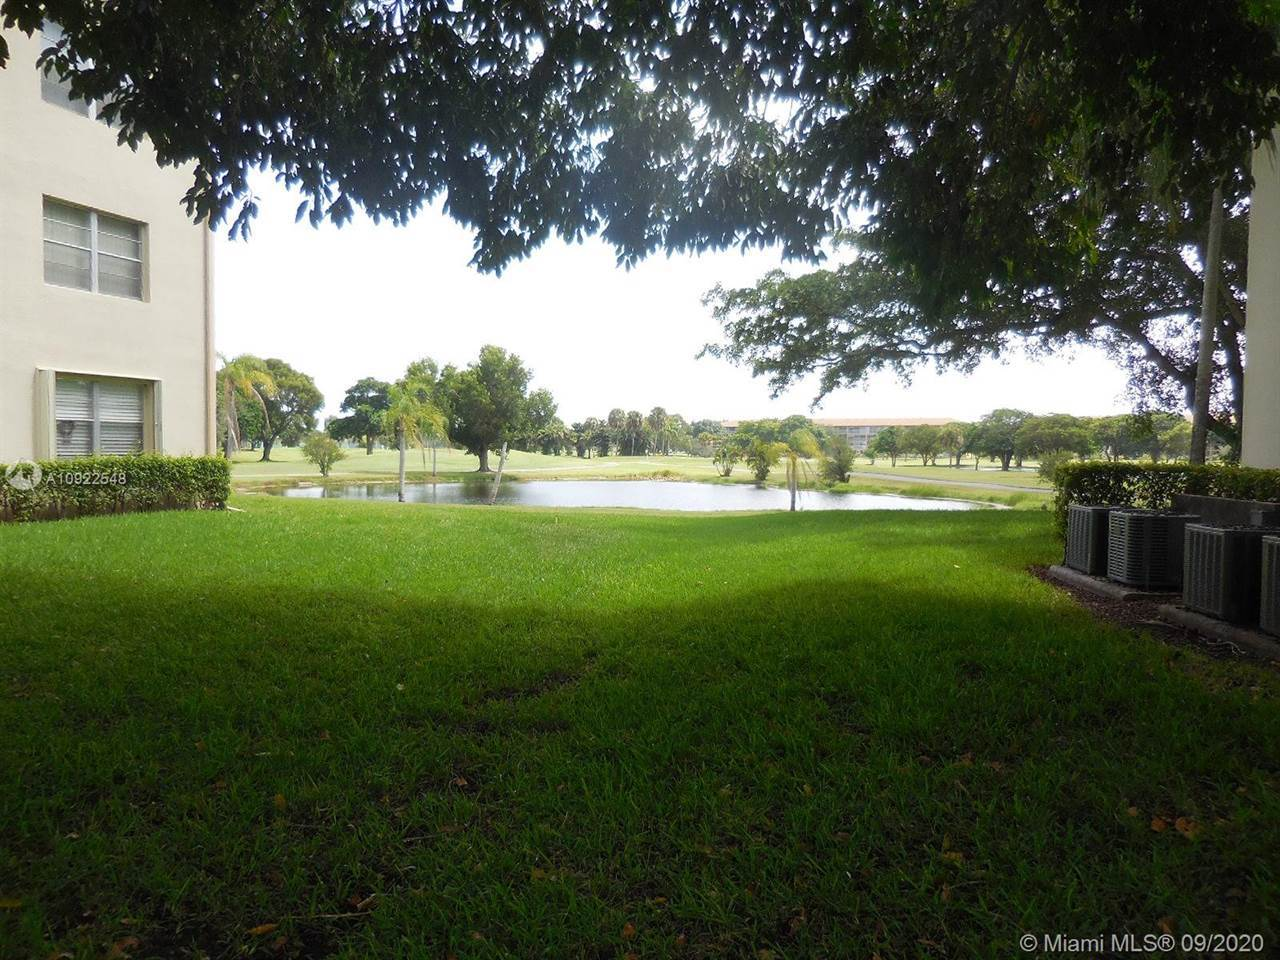 251 SW 132nd Way, #413H, Pembroke Pines, FL 33027